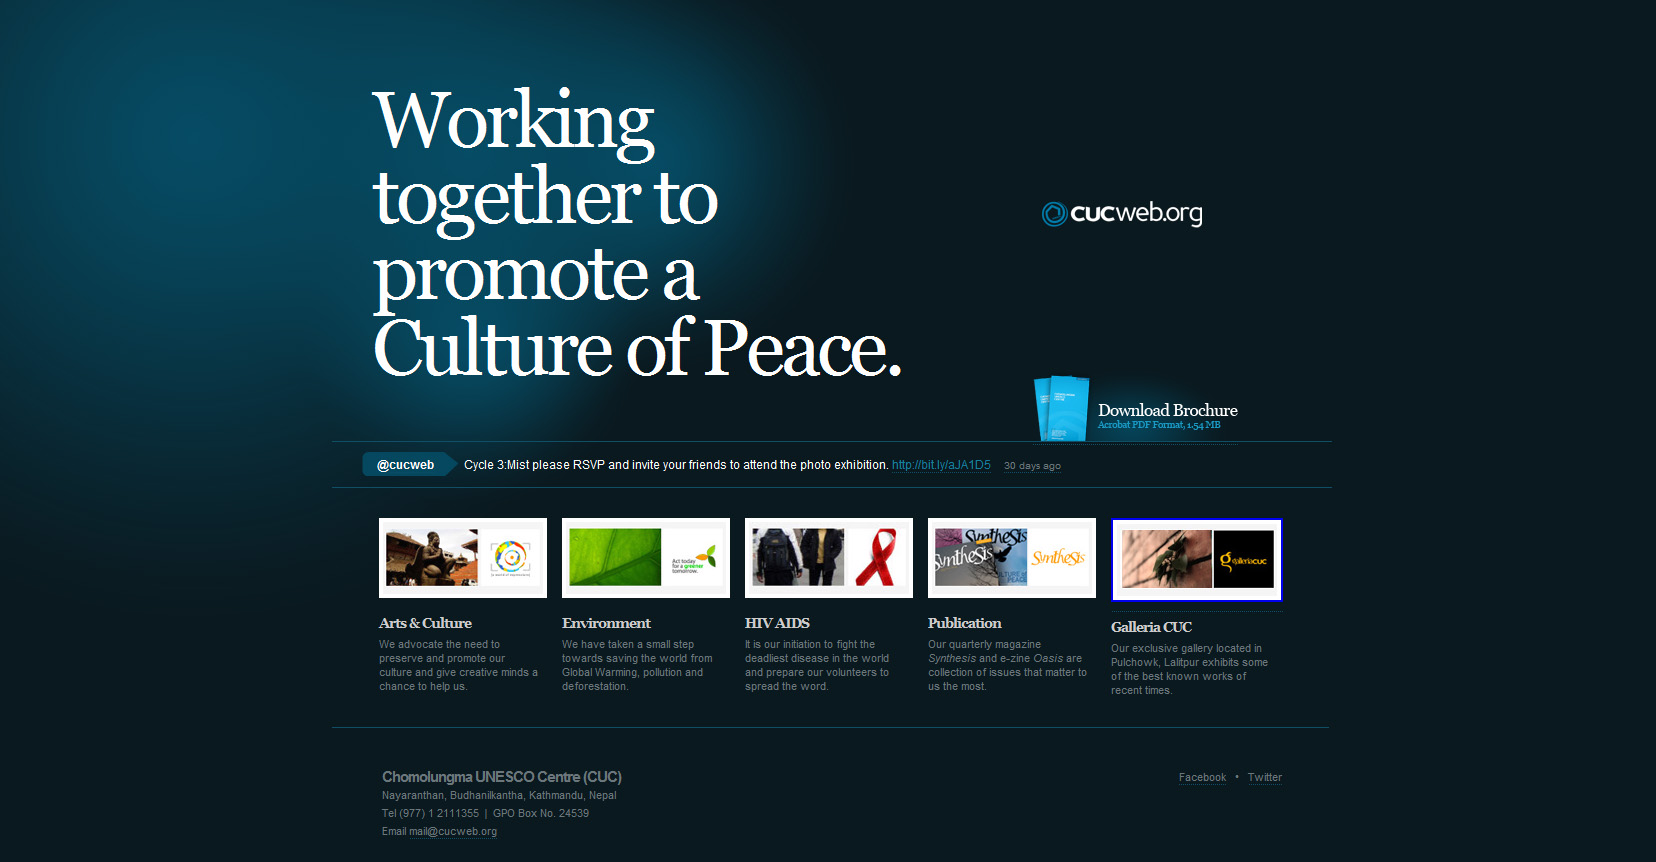 Homepage of cucweb.org